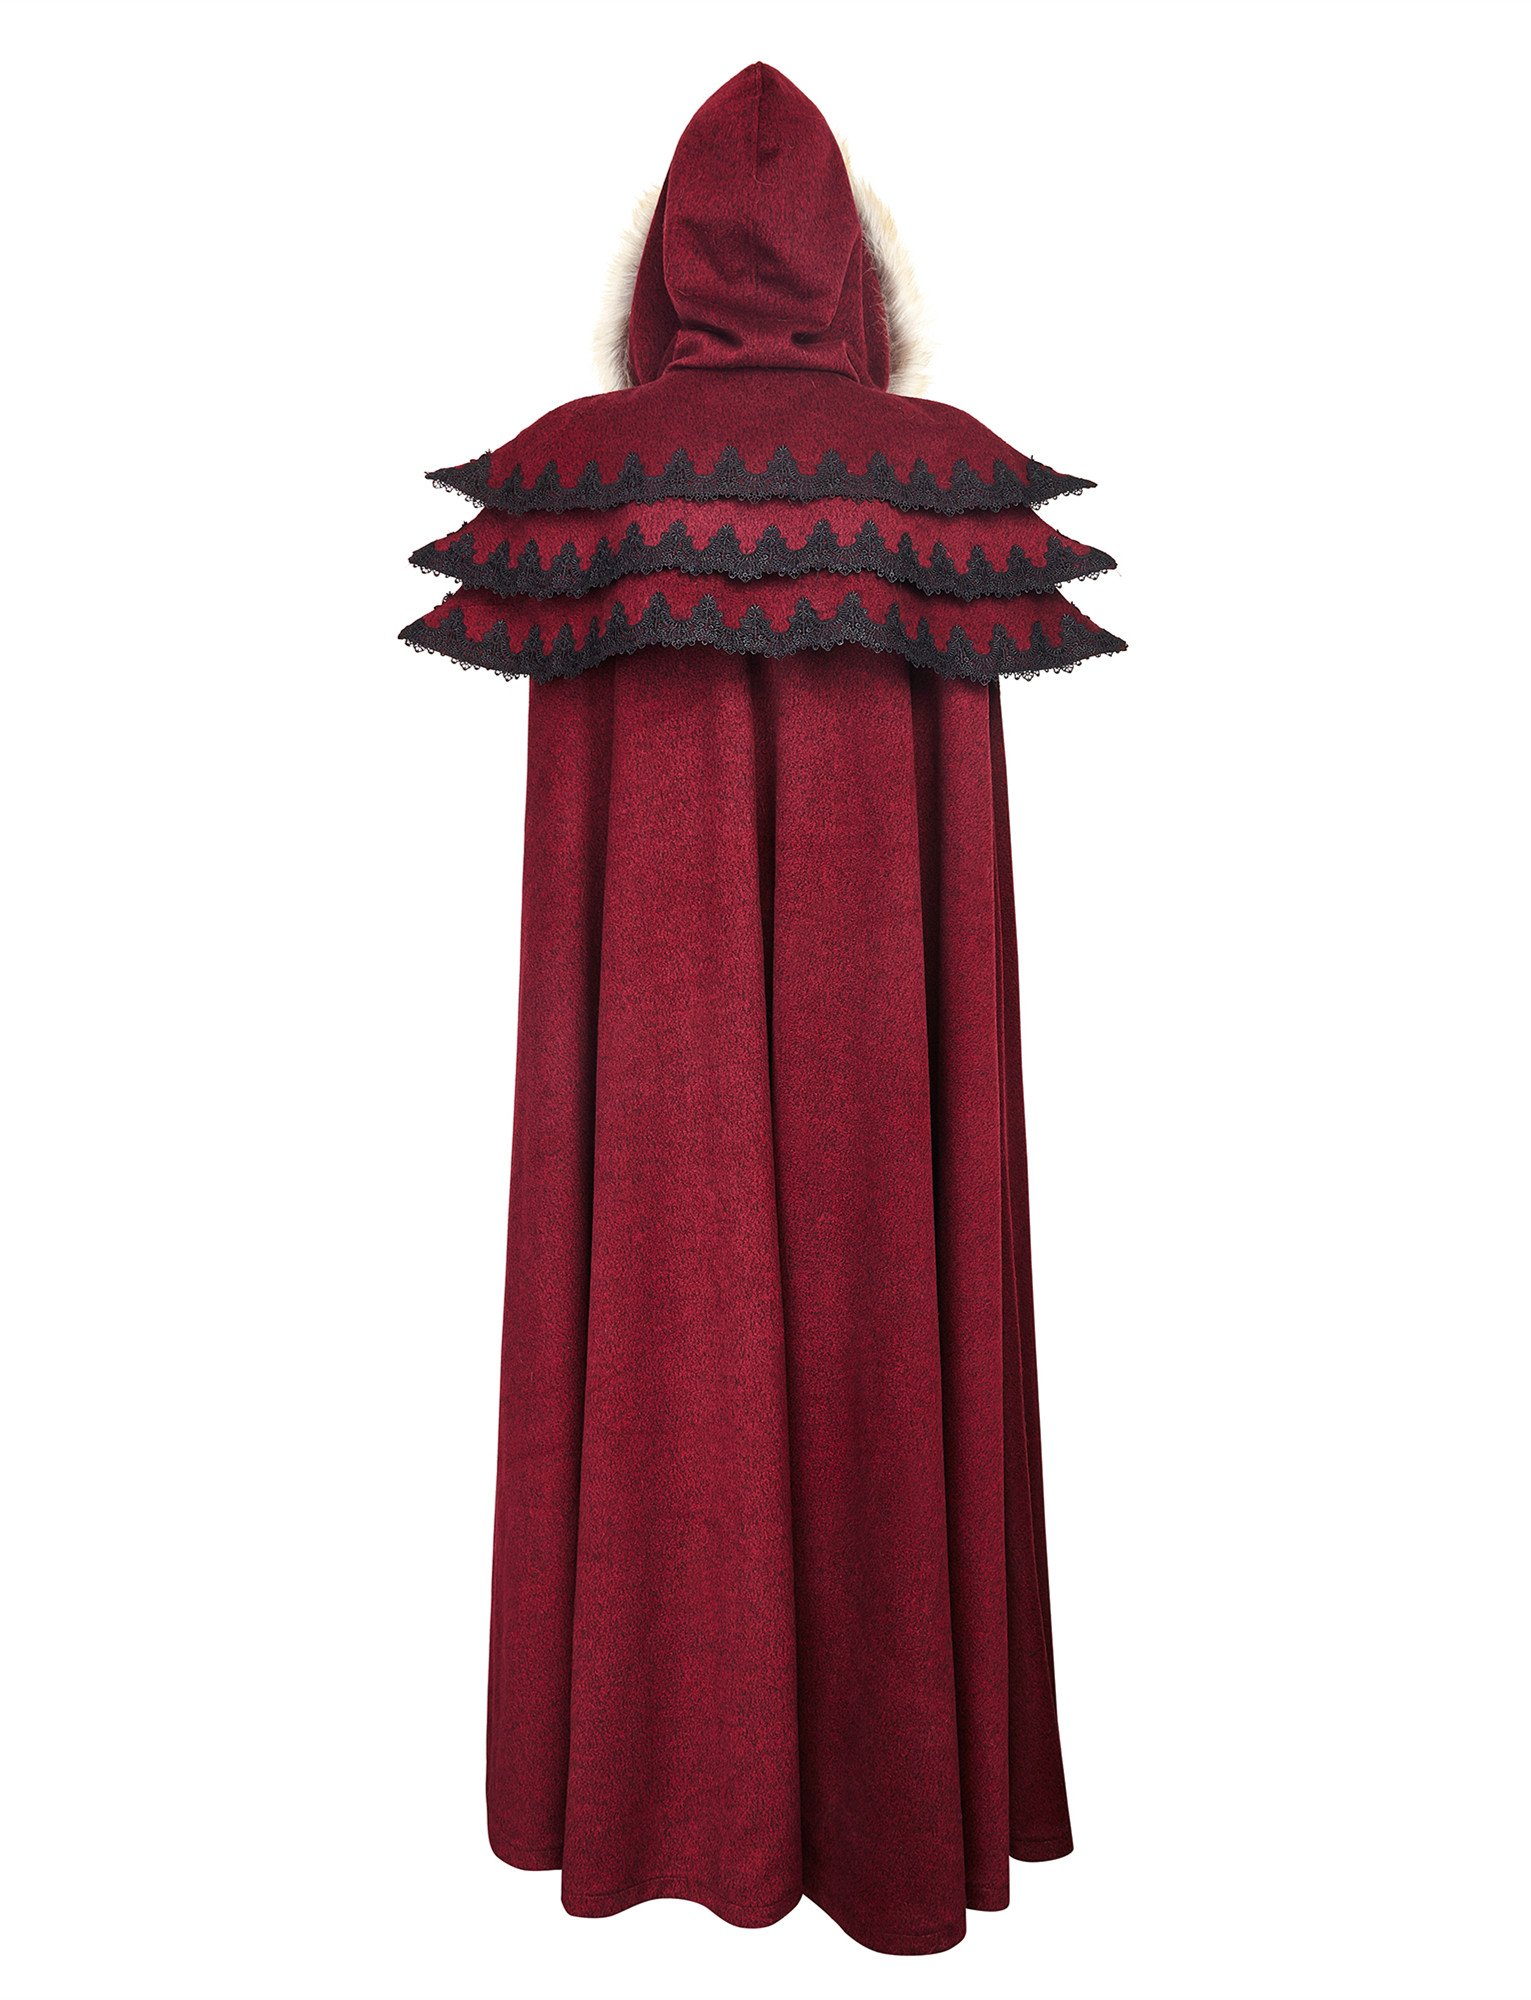 Punk Rave Women's Medieval Fluffy Faux Fur Trimmed Cape Full Length Hooded Cloak Coat(Red) by Punk Rave (Image #6)